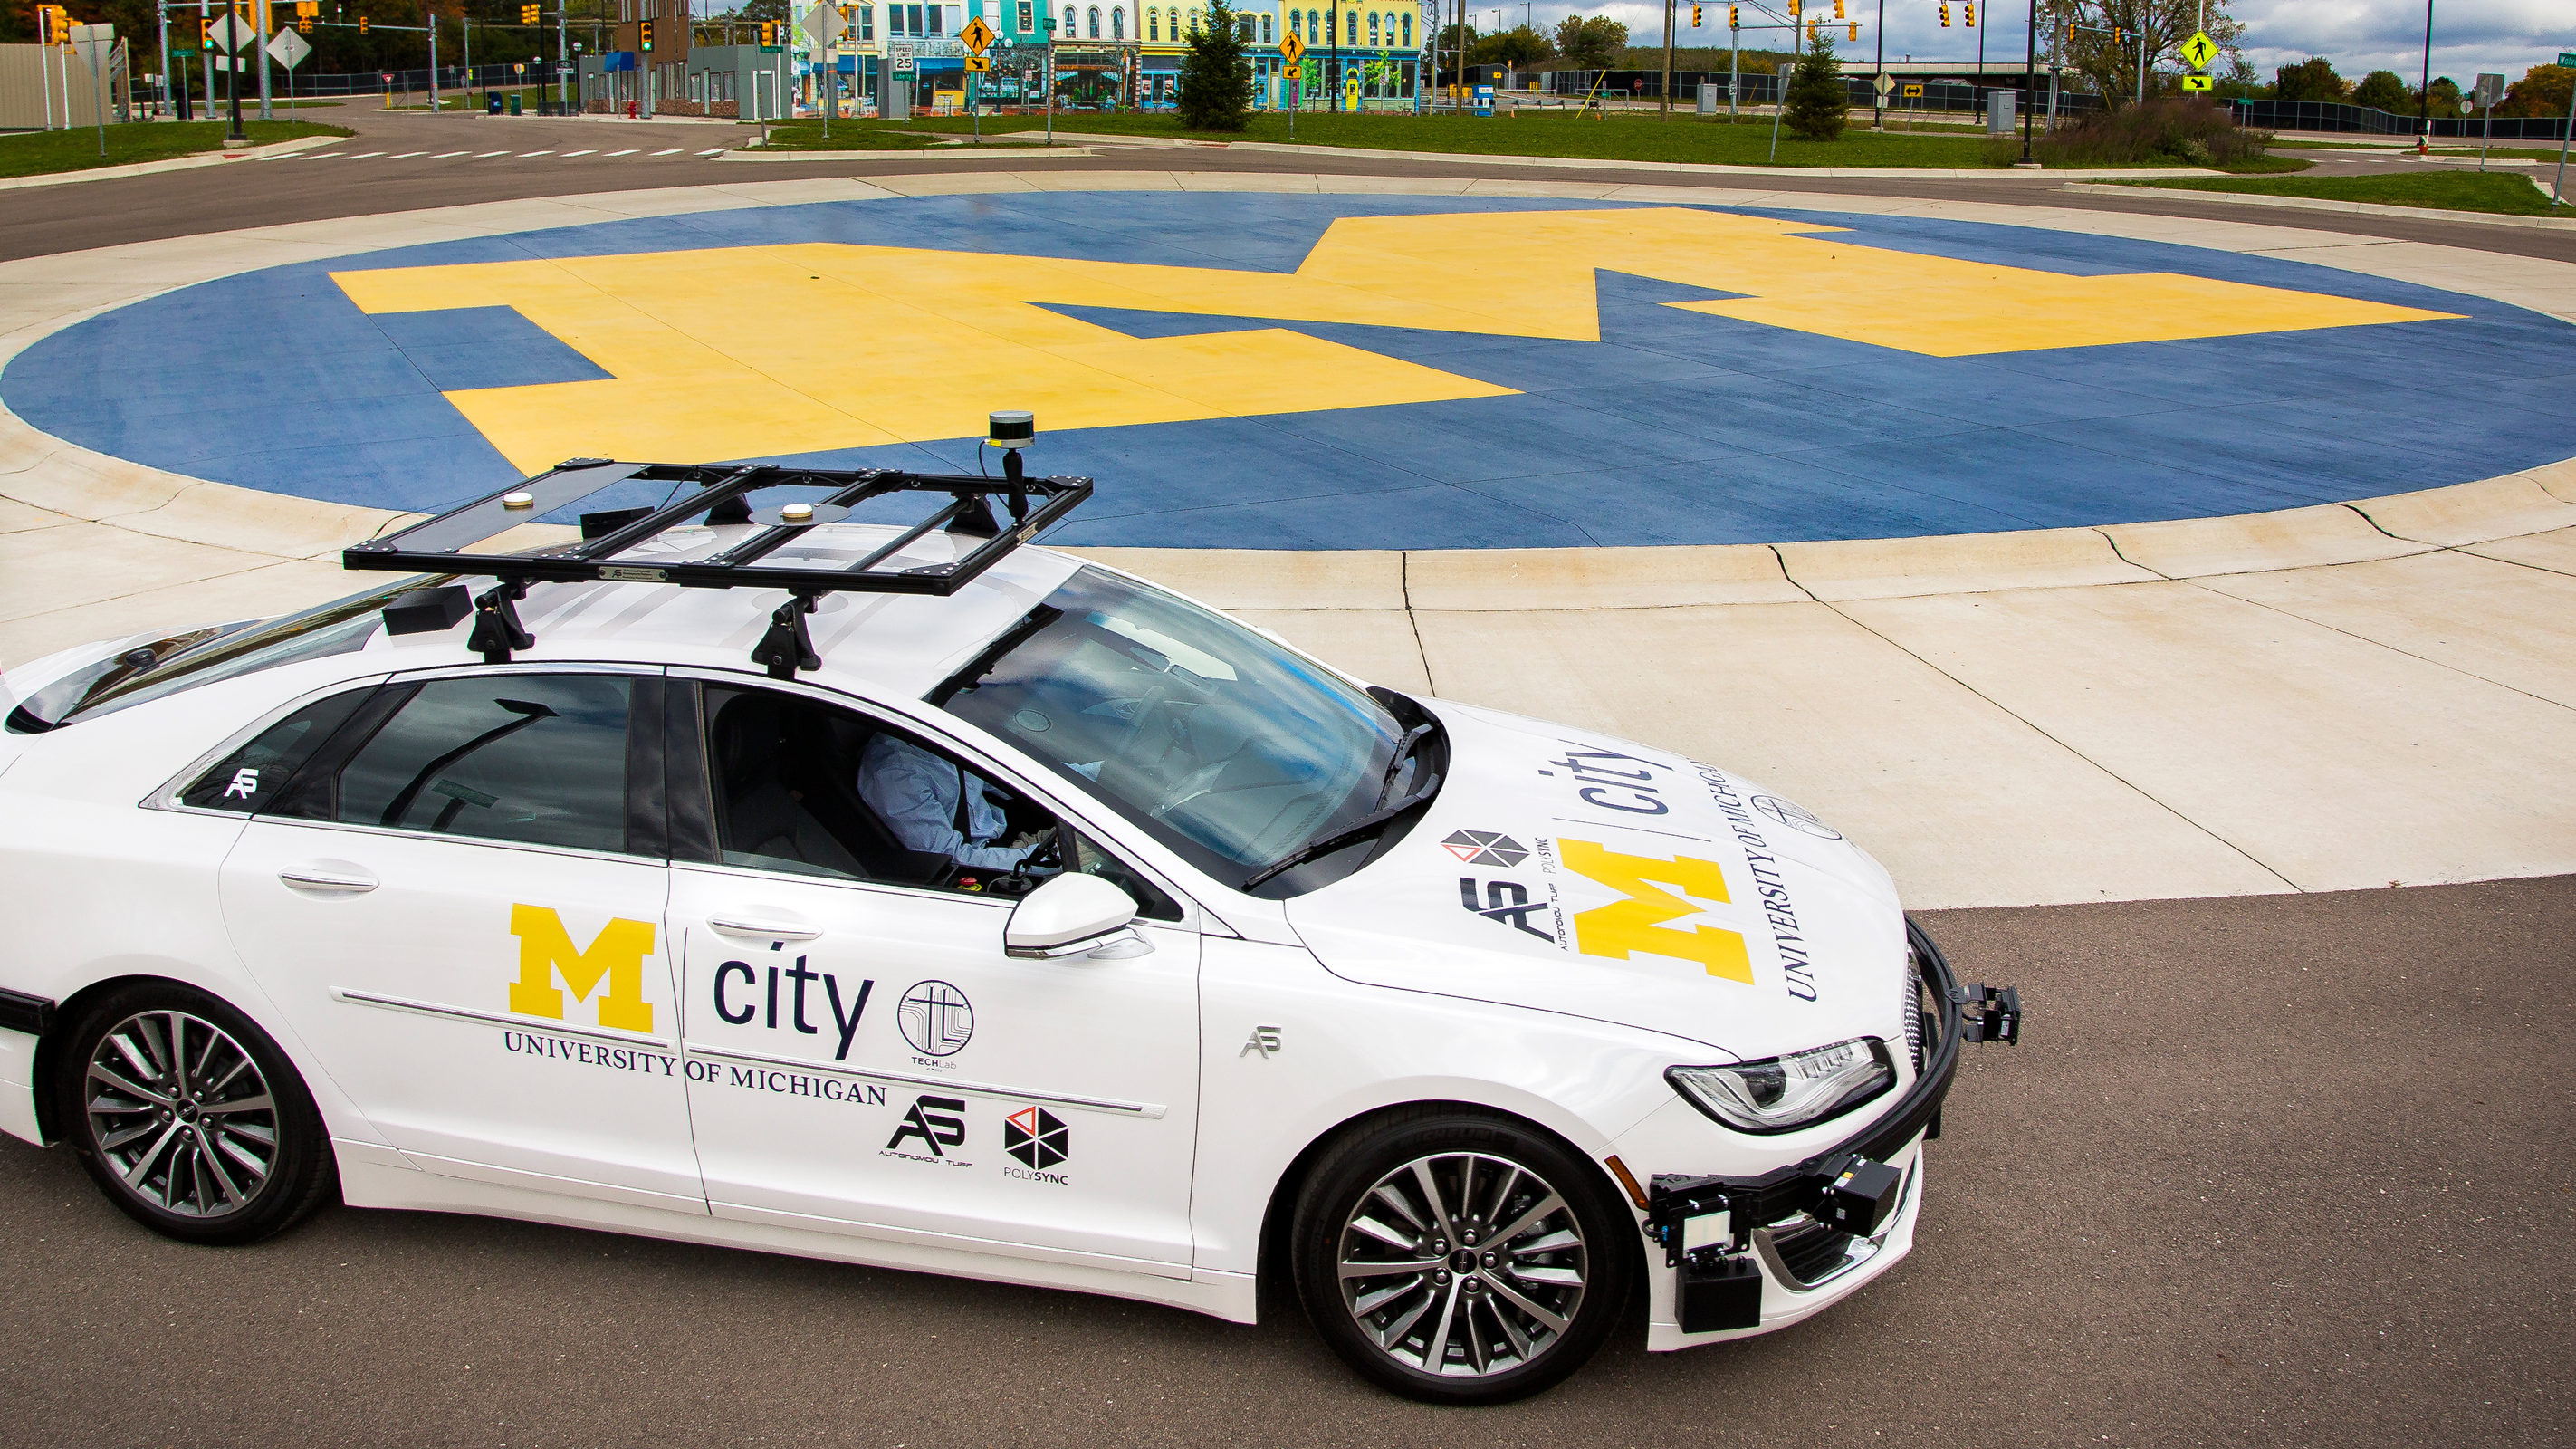 A white Mcity car parked in a circular drive painted with the Michigan logo